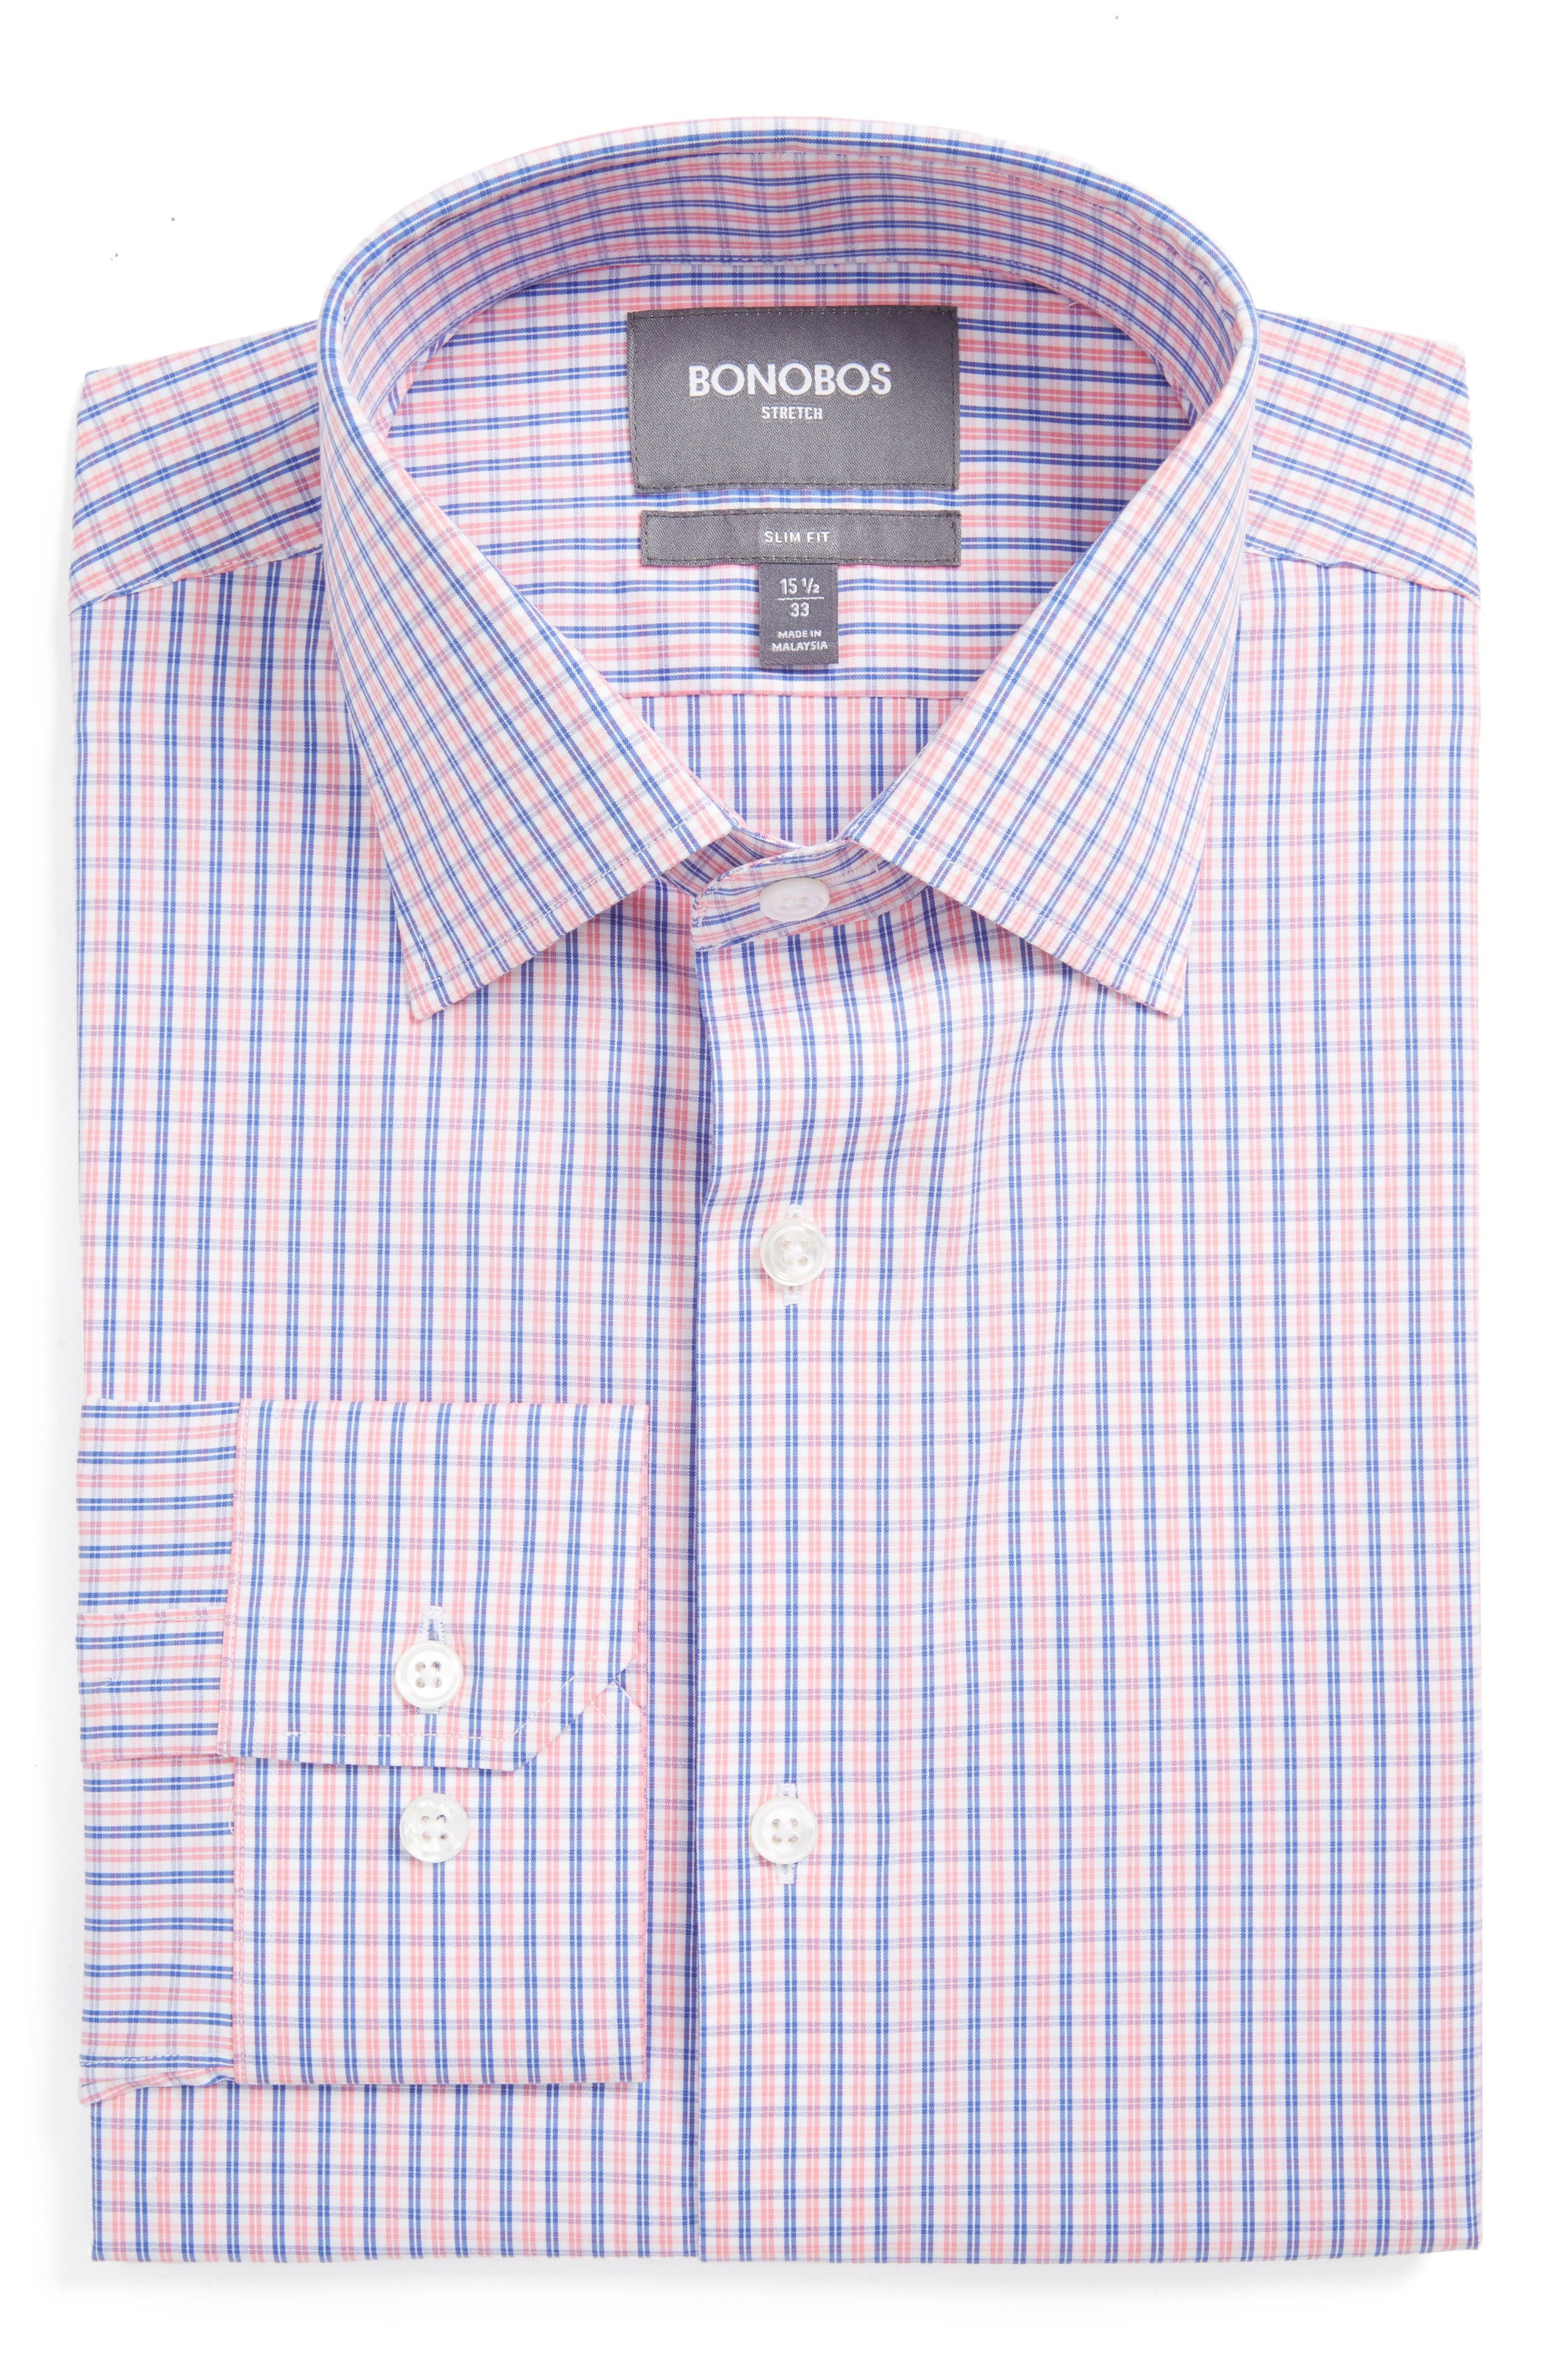 Jetsetter Slim Fit Check Stretch Dress Shirt,                         Main,                         color, Pink Wright